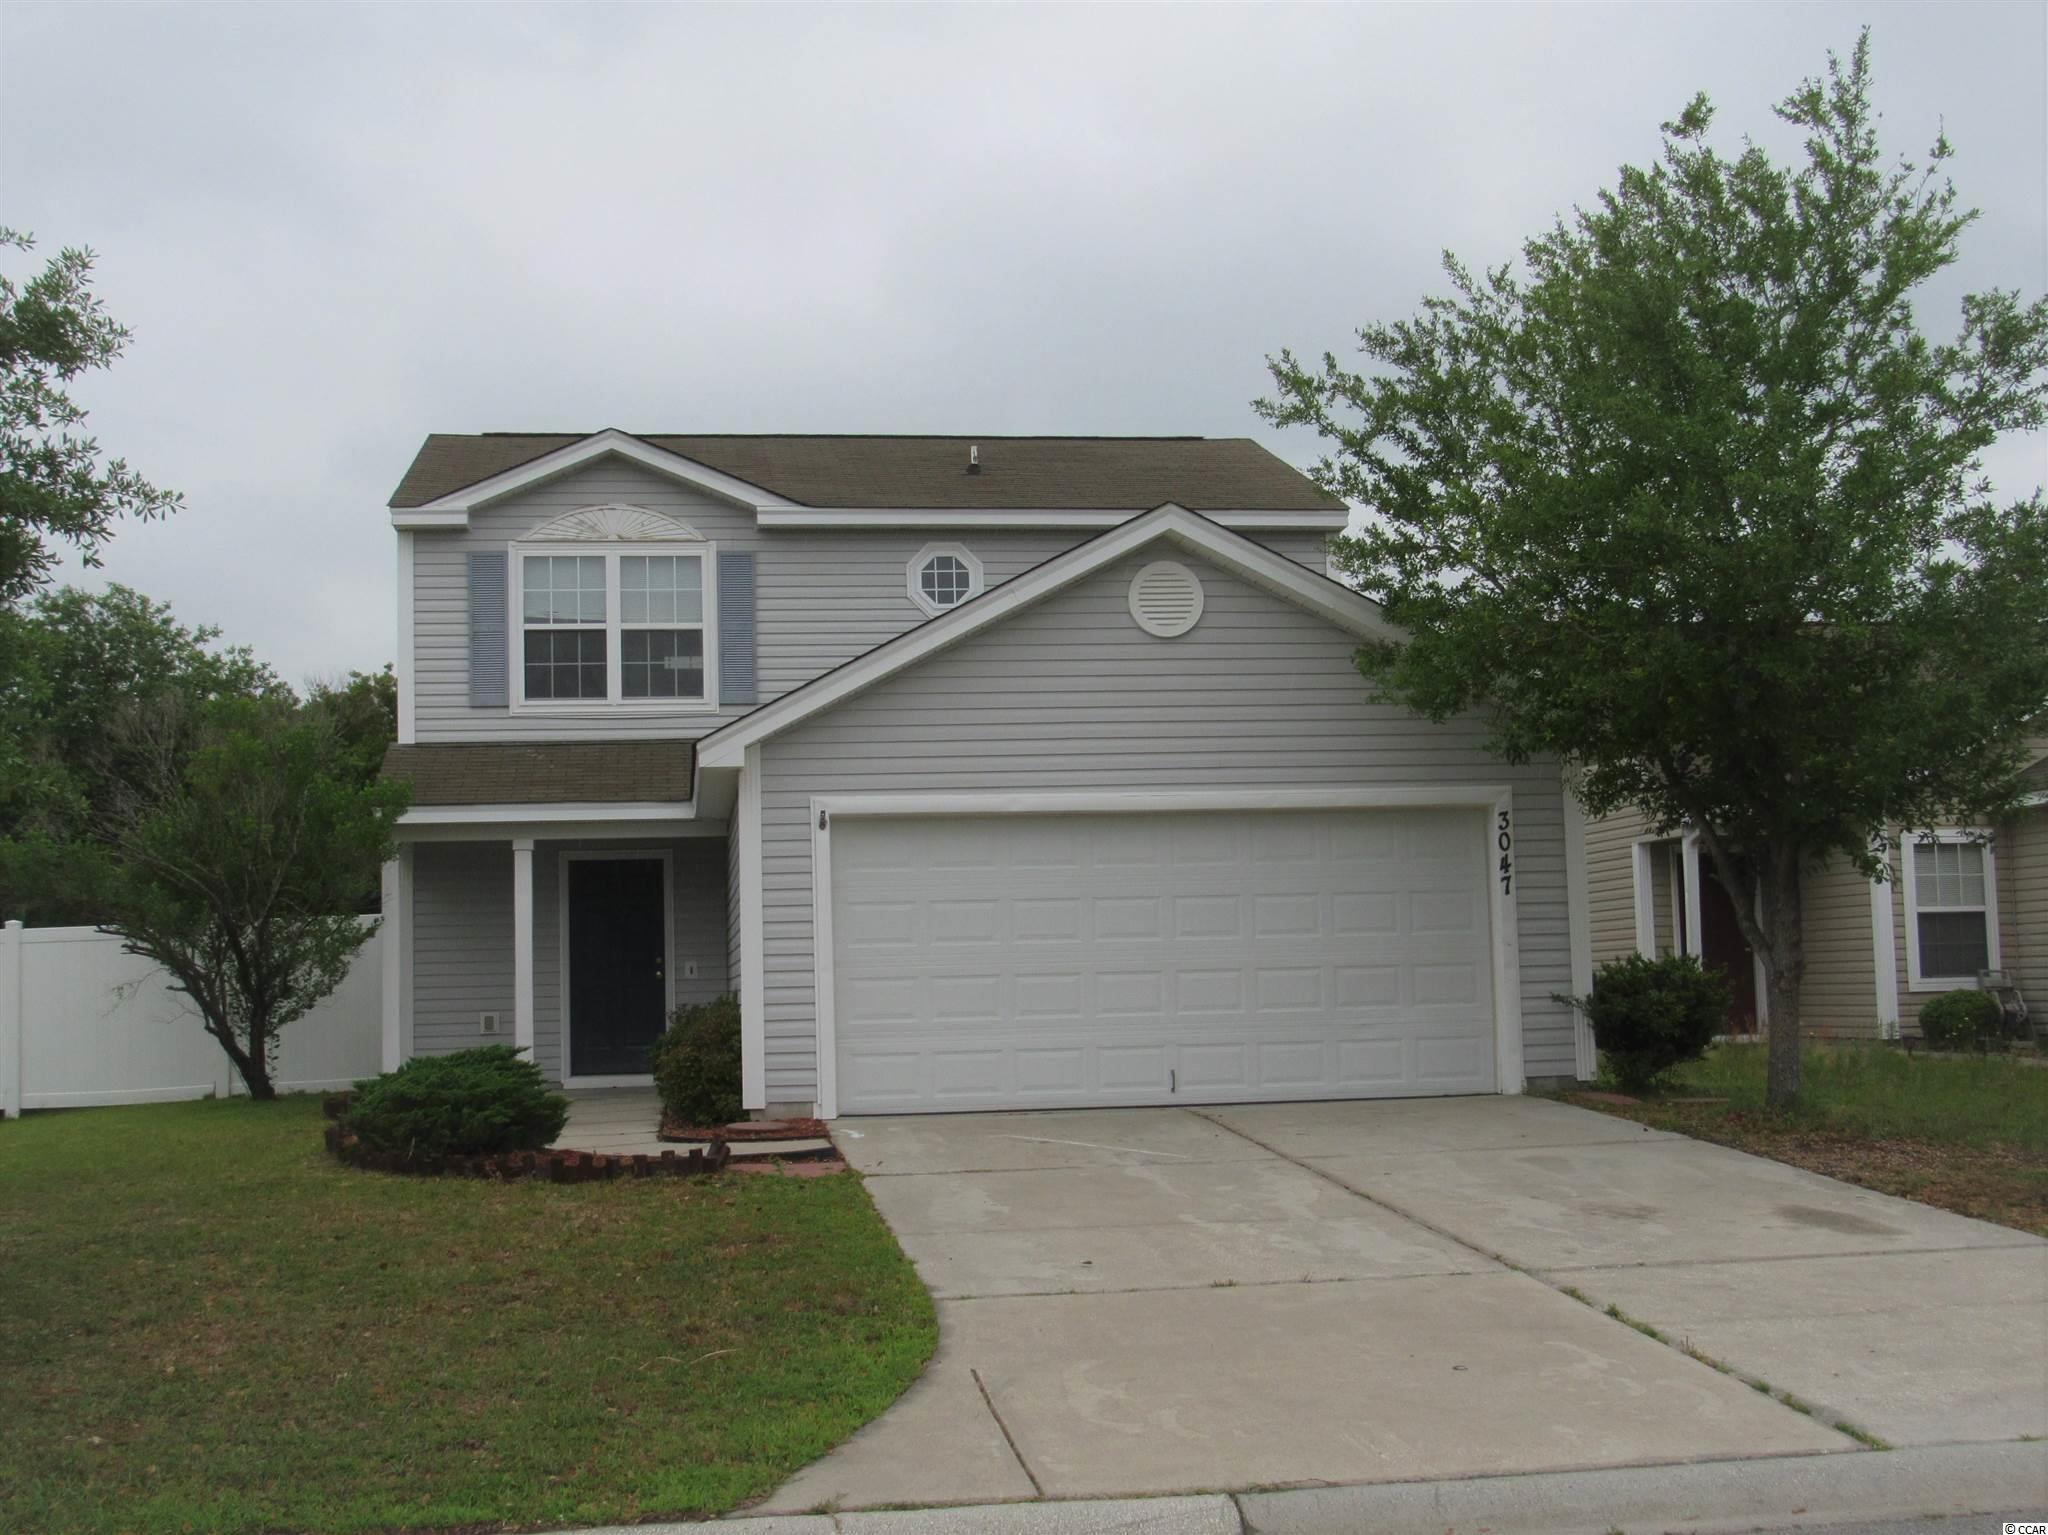 SHOPPING, RE:  THREE BEDROOM/TWO AND A HALF BATHS TWO STORY HOME WITH TWO CAR GARAGE LOCATED IN THE NEIGHBORHOOD OF AVALON AT CAROLINA FOREST.  ALL APPLIANCES CONVEY INCLUDING THE WASHER AND DRYER.  THE LARGE, OPEN GREAT ROOM FEATURES SLIDING GLASS DOORS TO THE PATIO AND GREAT OUTDOORS.  THE KITCHEN HAS A PANTRY FOR EXTRA STORAGE AND A BREAKFAST BAR THAT OVERLOOKS THE GREAT ROOM.  UPSTAIRS, THE MASTER BEDROOM FEATURES A WALK-IN CLOSET AND OTHER CLOSET, A CEILING FAN AND ALCOVE AREA.  NEW HOT WATER HEATER, SLOP SINK IN THE GARAGE AND NICE STORAGE UNDER THE STAIRS.  THE COMMUNITY HAS FANTASTIC AMENITIES – POOL, A PLAYGROUND , WALKING TRAILS, GRILLING STATION AND PICNIC AREA, TENNIS COURTS, BASKETBALL, SOCCER AND BASEBALL FIELDS.  THE PERFECT PLACE FOR YOUR CHILDREN TO PLAY!  CLOSE TO EVERYTHING STAURANTS, SCHOOLS AND SO MUCH MORE!